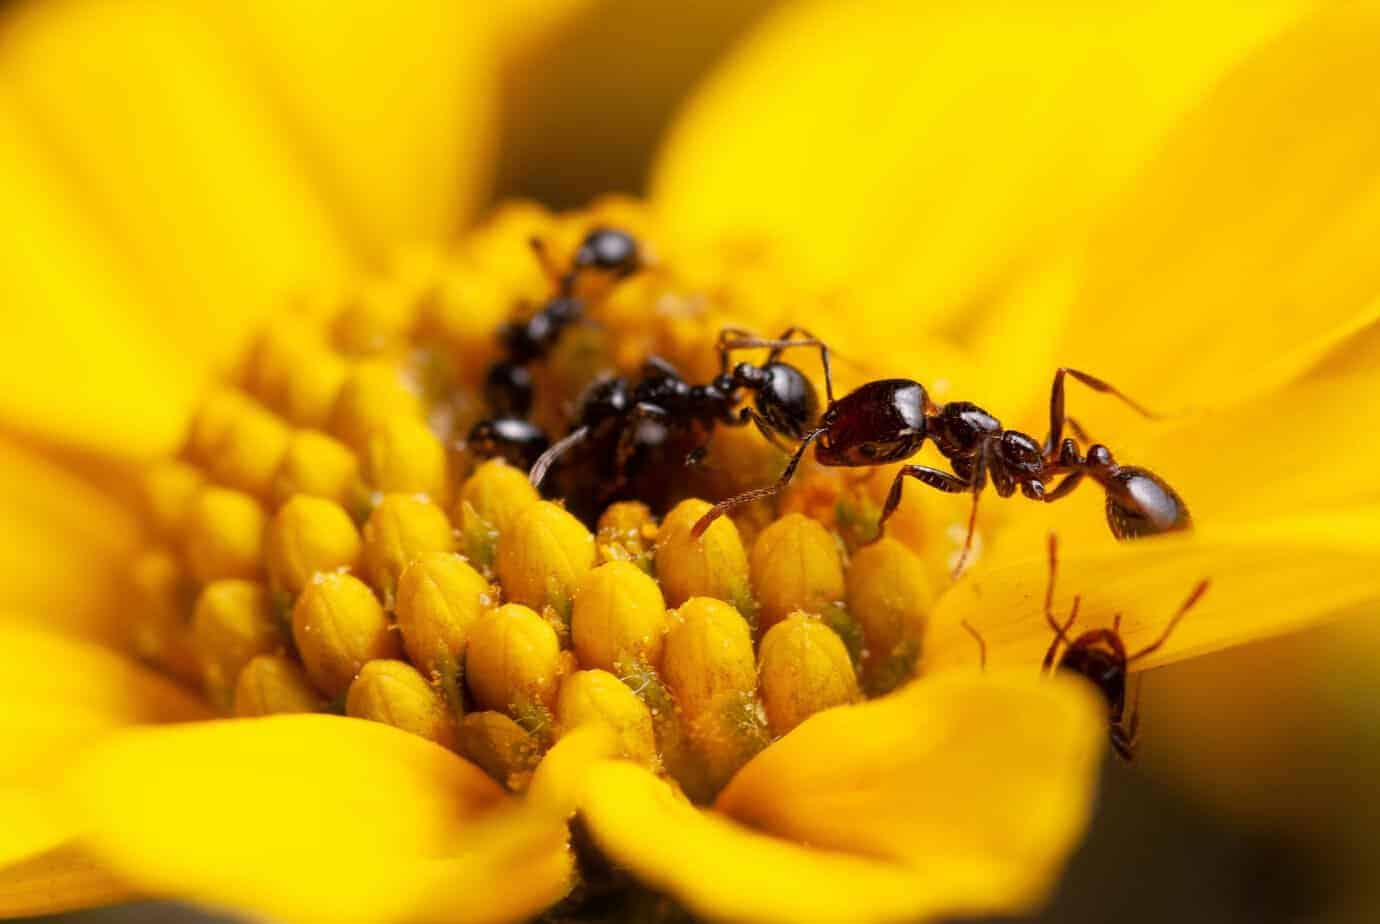 Fire ants produce the most potent antimicrobials identified to date in ants and other social insects.